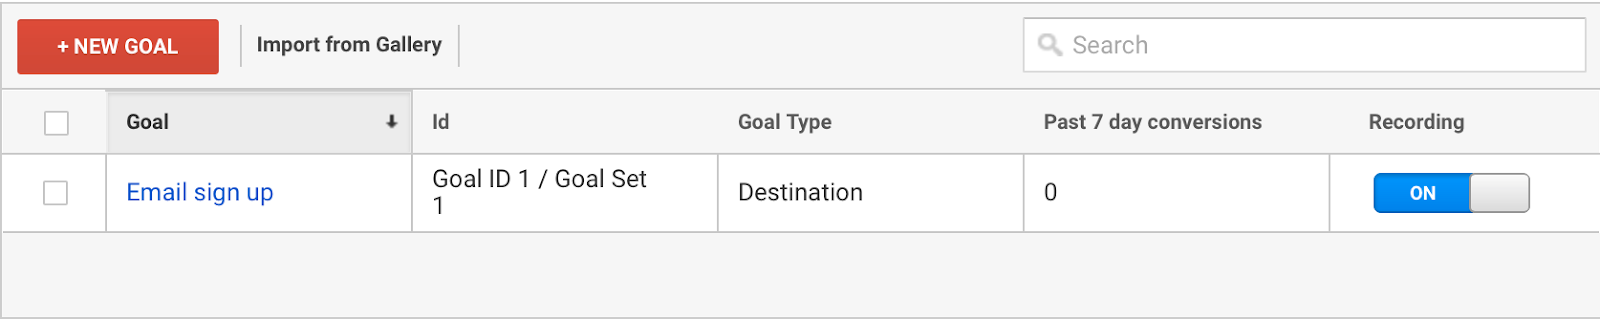 Guild for set up a lead capture goal in google analytics -email sign up